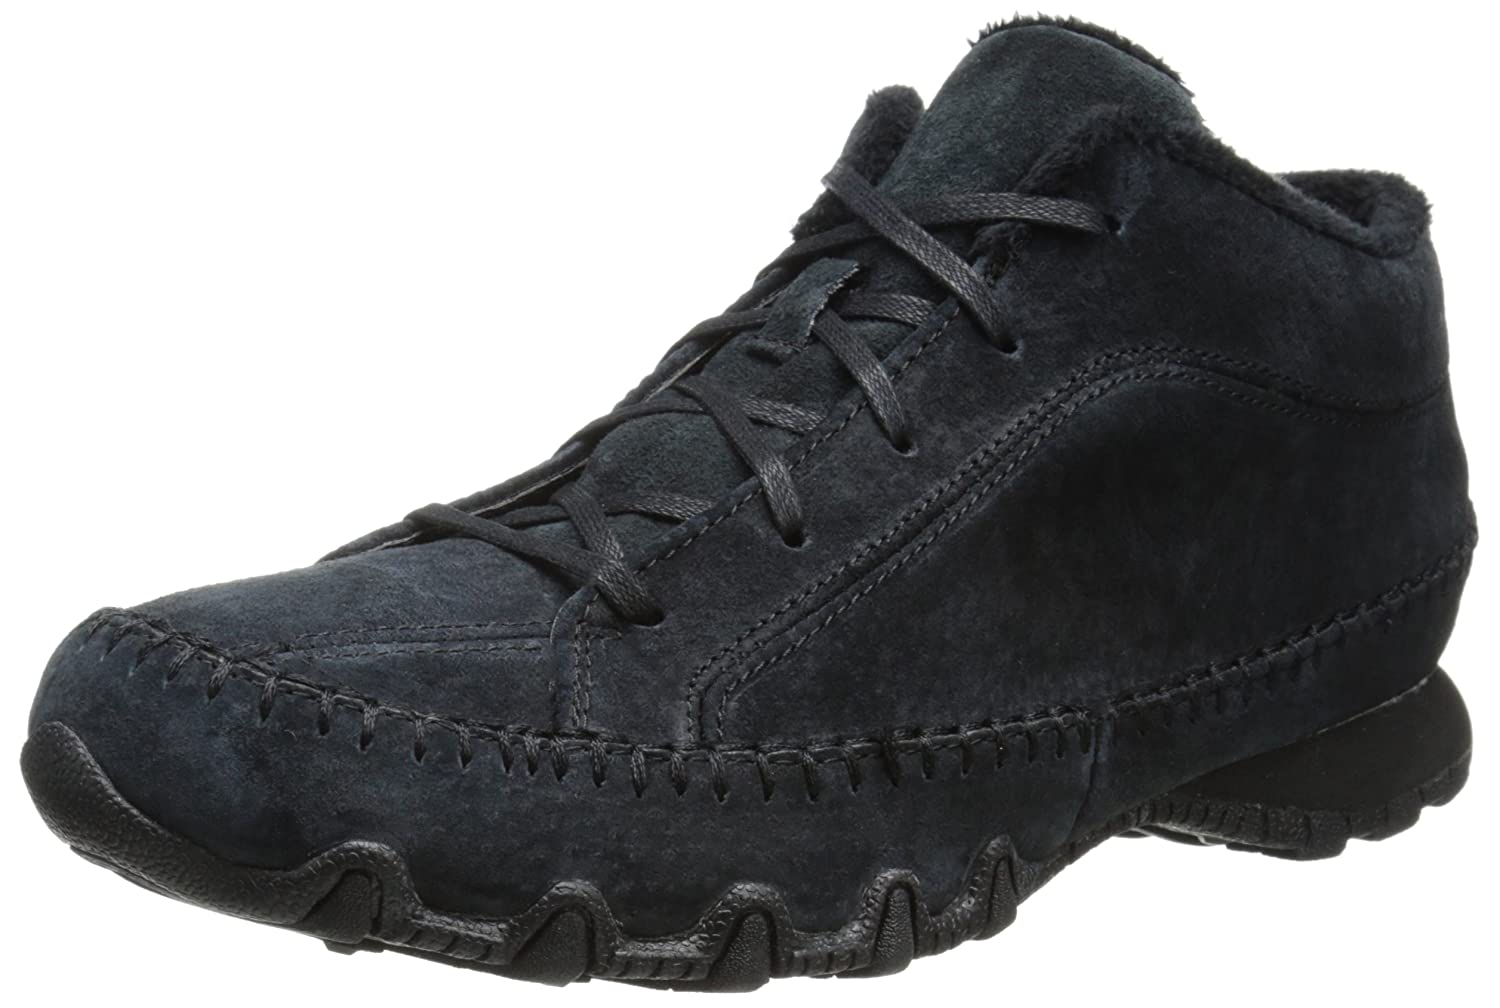 Skechers Bikers-Totem Pole Weit KnAtilde;para;chel Bootie  US 9 | UK 6 | EU 39|Black